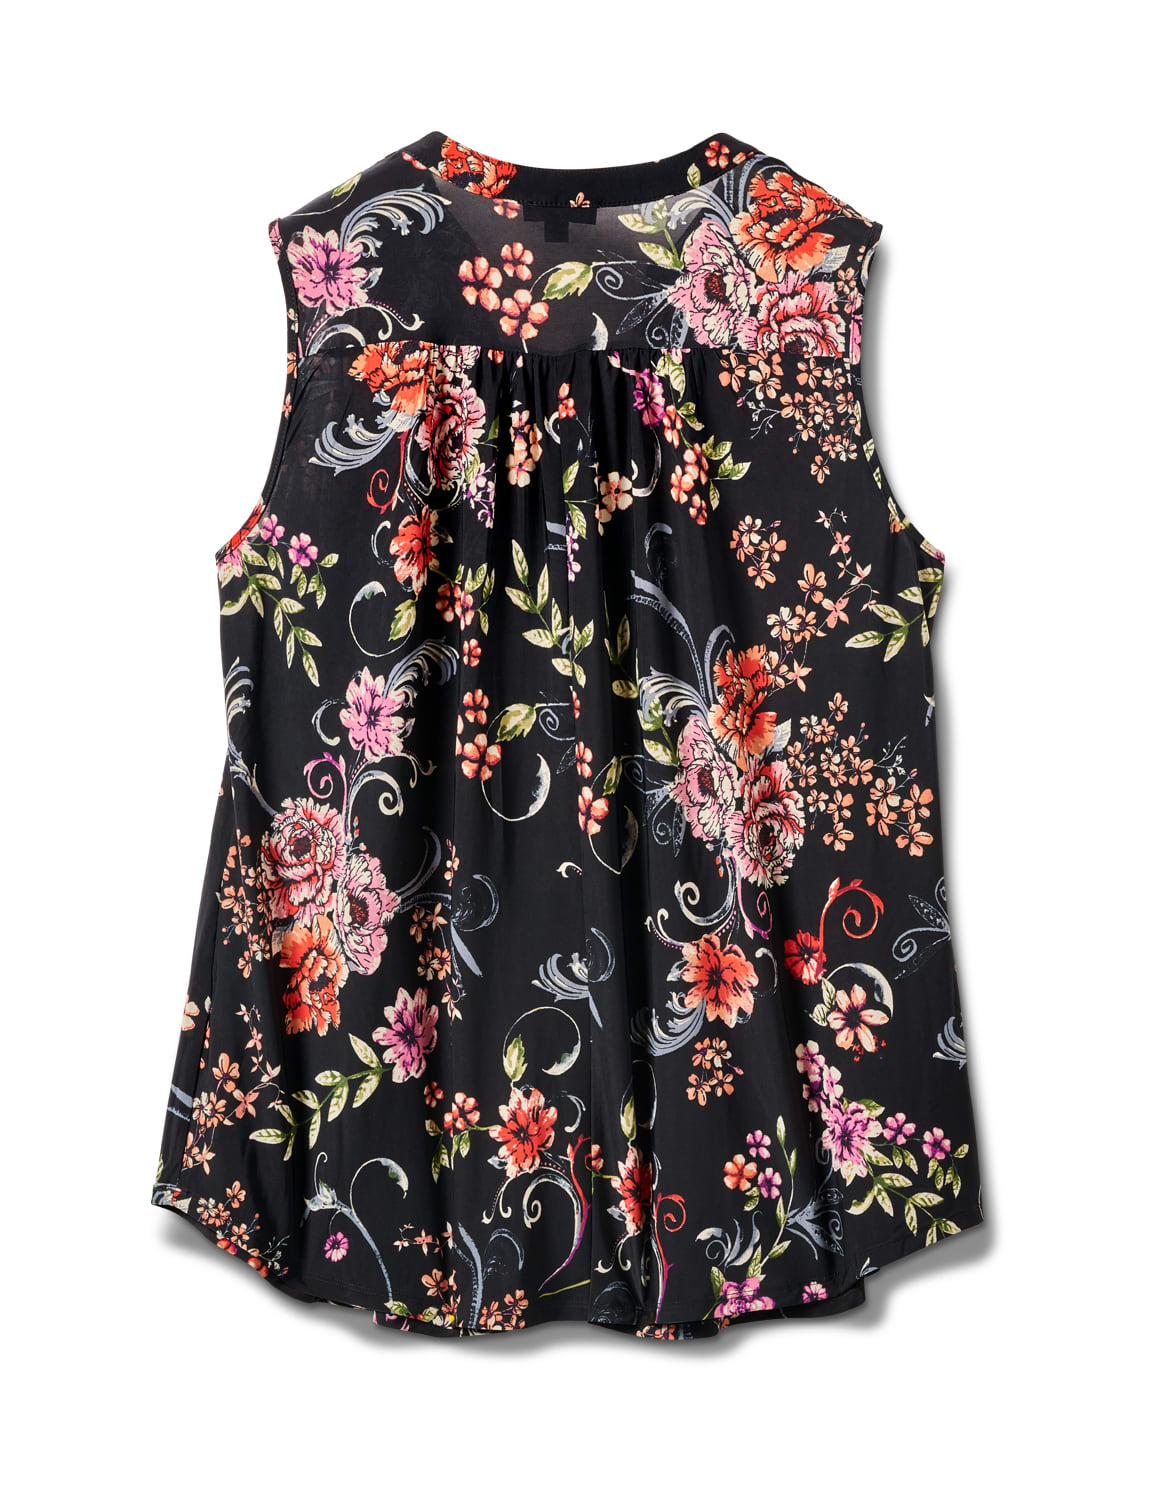 Sleeveless Floral Pintuck Popover - Black/Pink/Red - Back